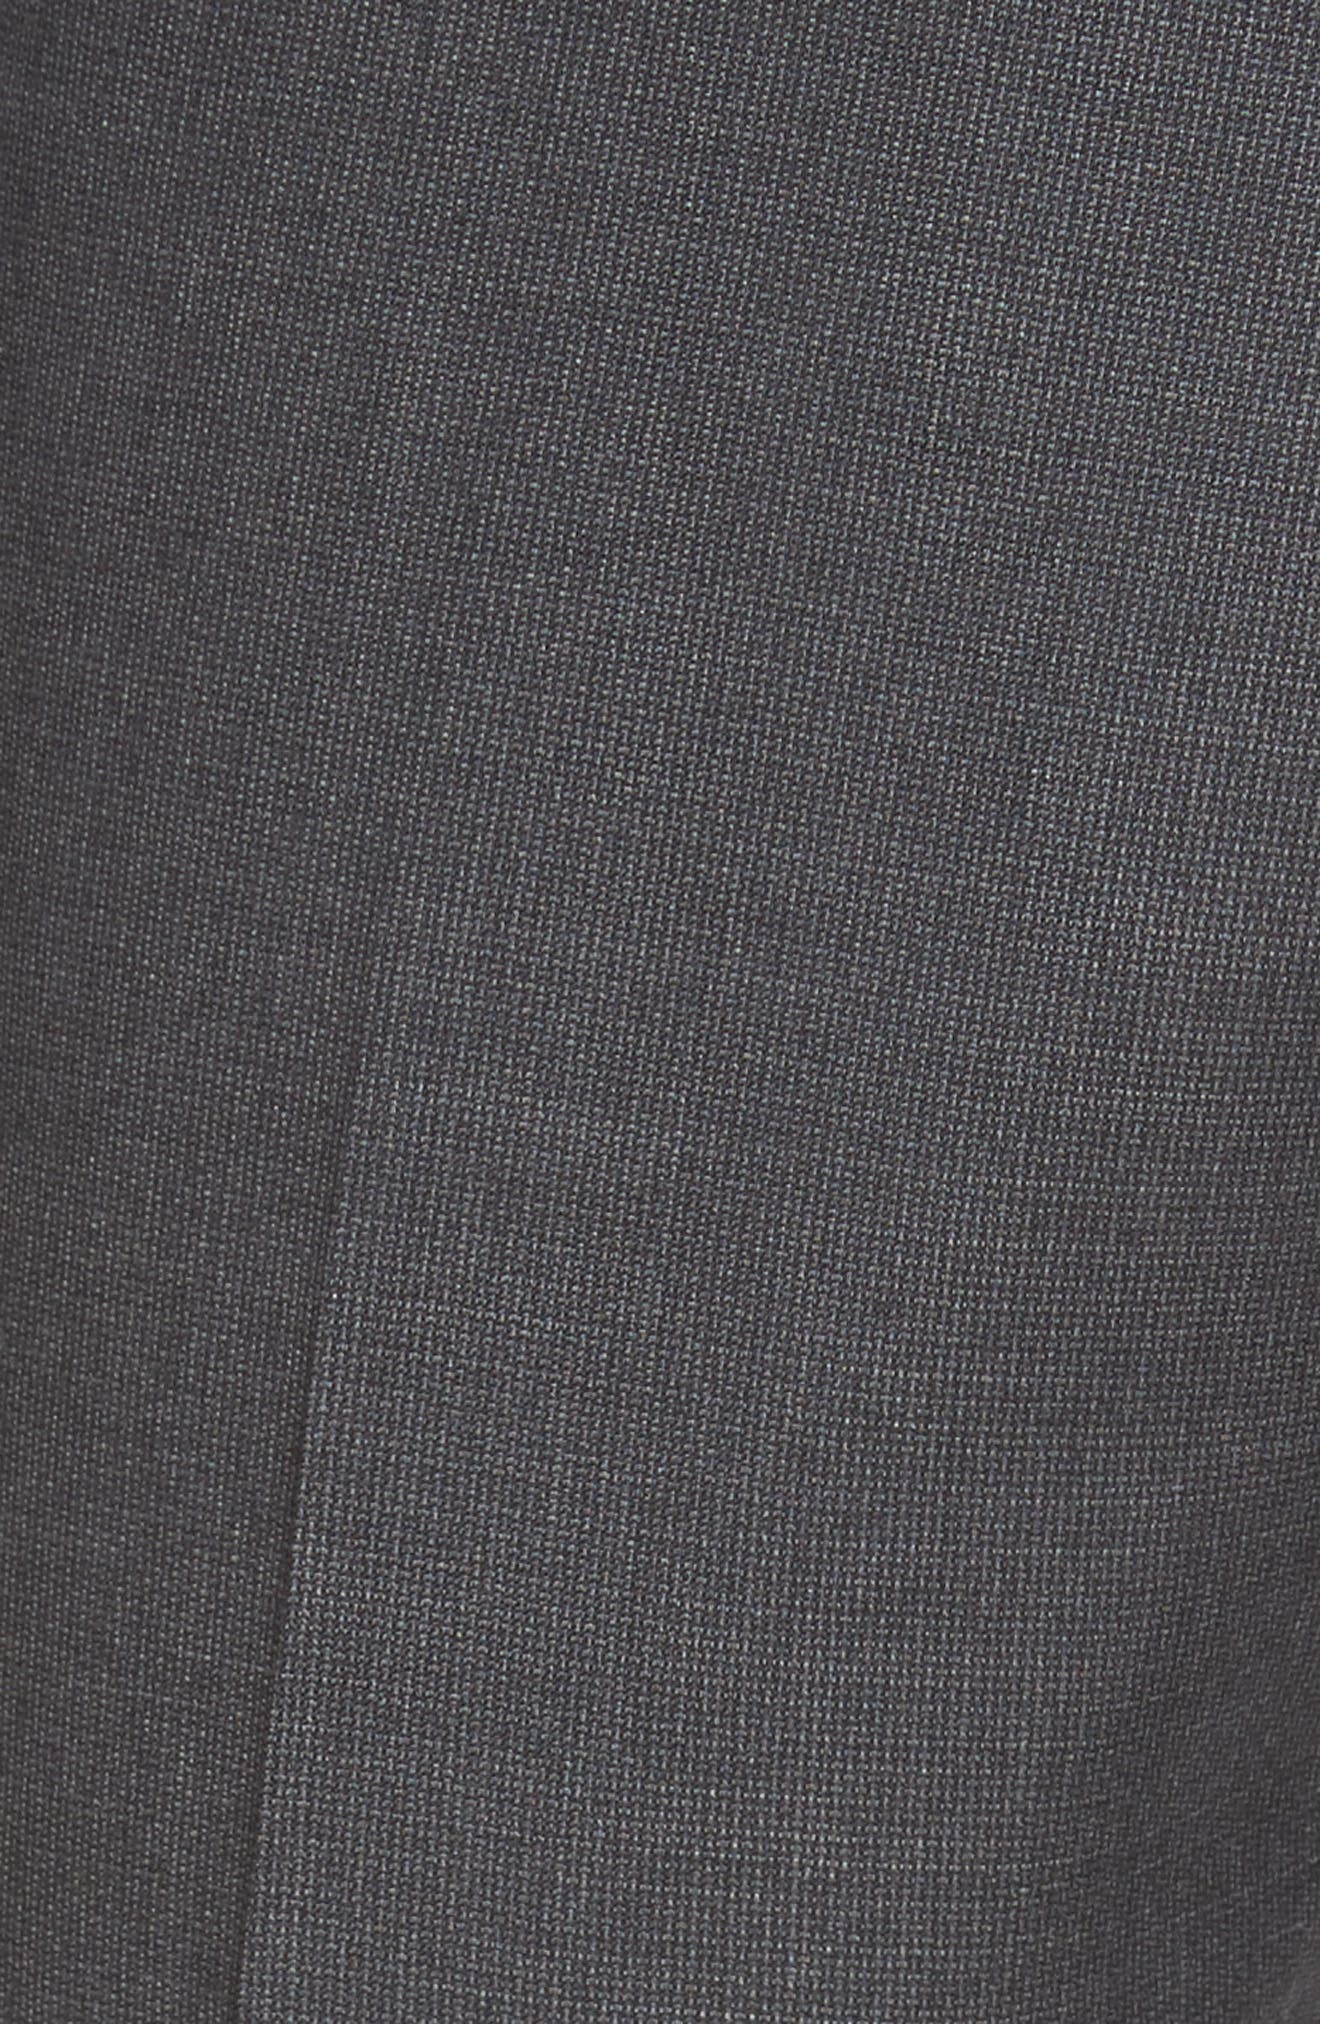 Flat Front Solid Wool Suit Trousers,                             Alternate thumbnail 5, color,                             Charcoal